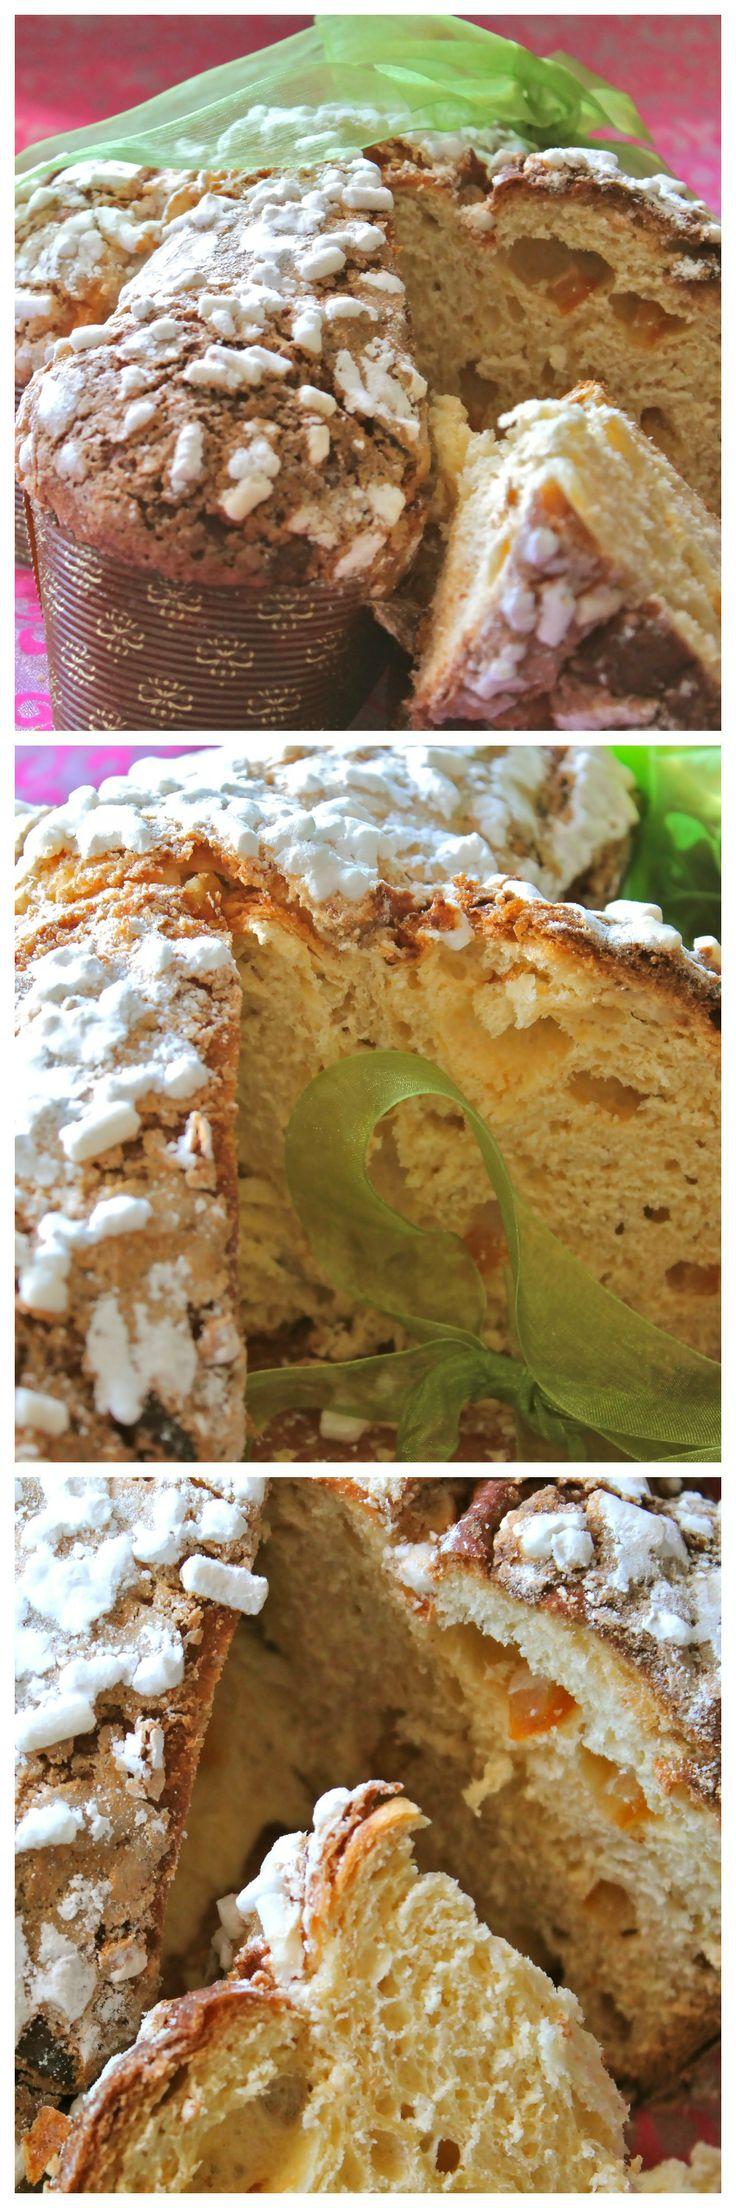 "Tipical Italian Easter Cake - ""Colomba"""